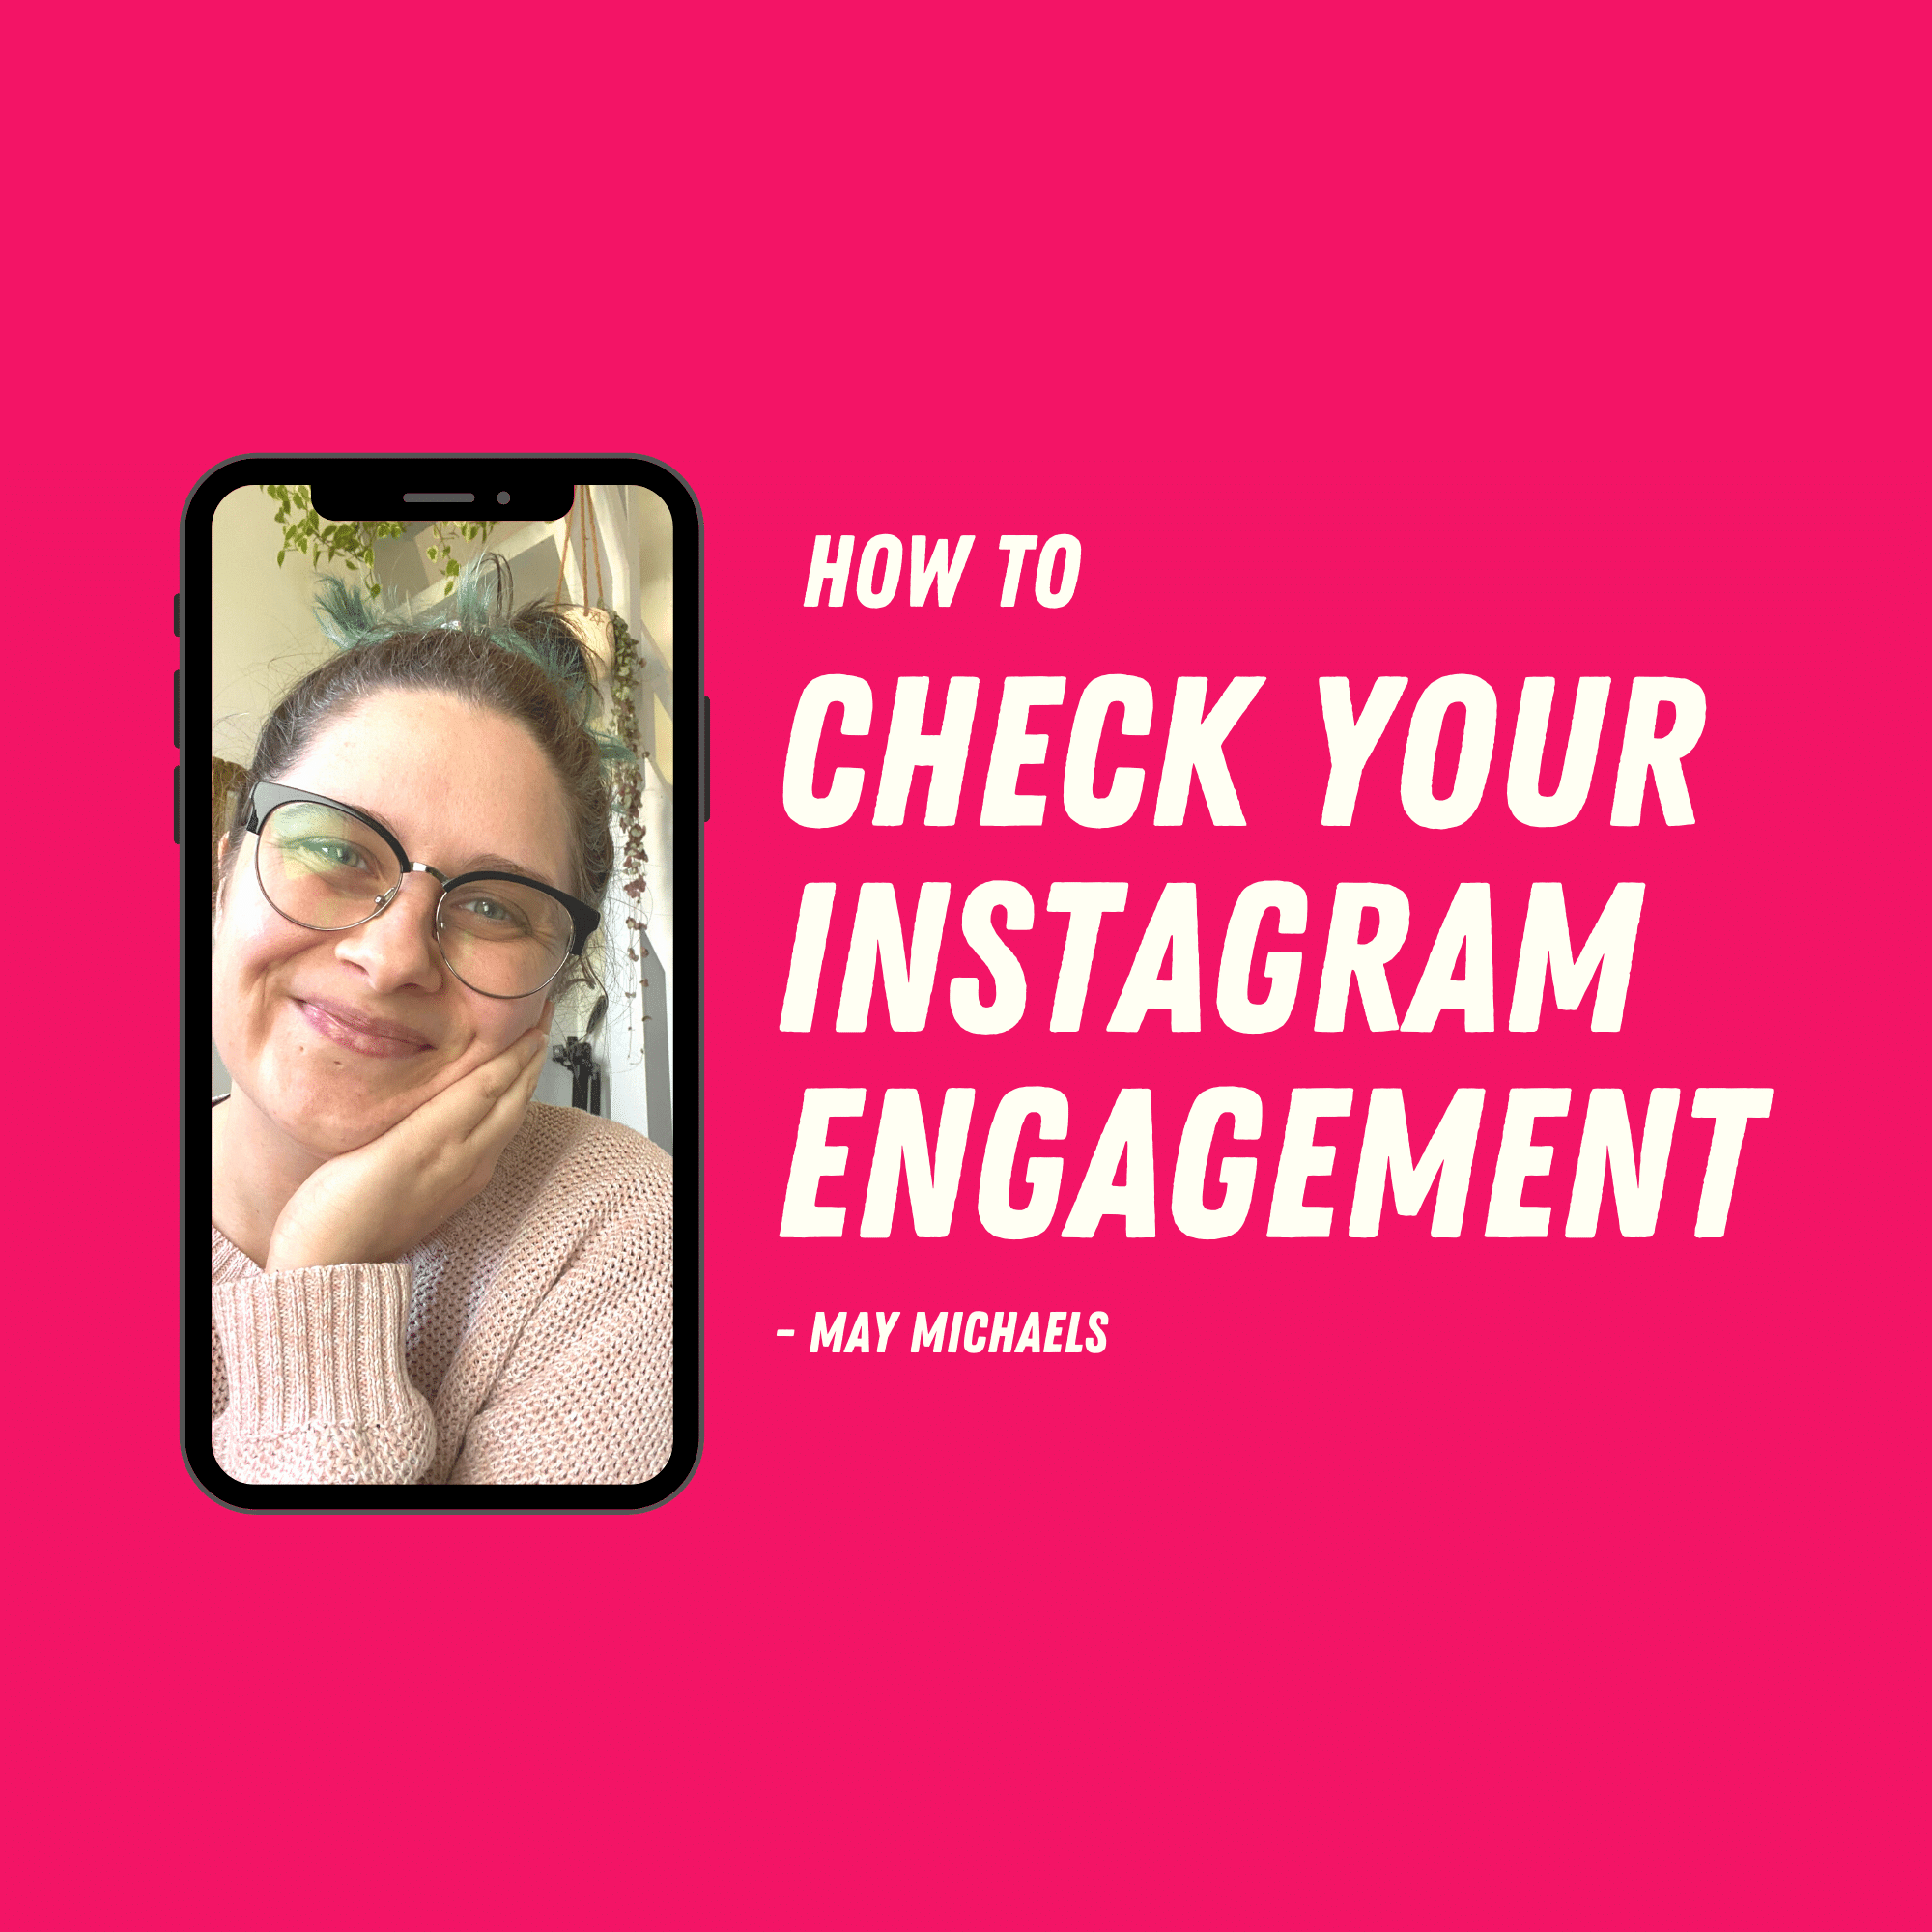 How To Find Your Instagram Engagement Rate